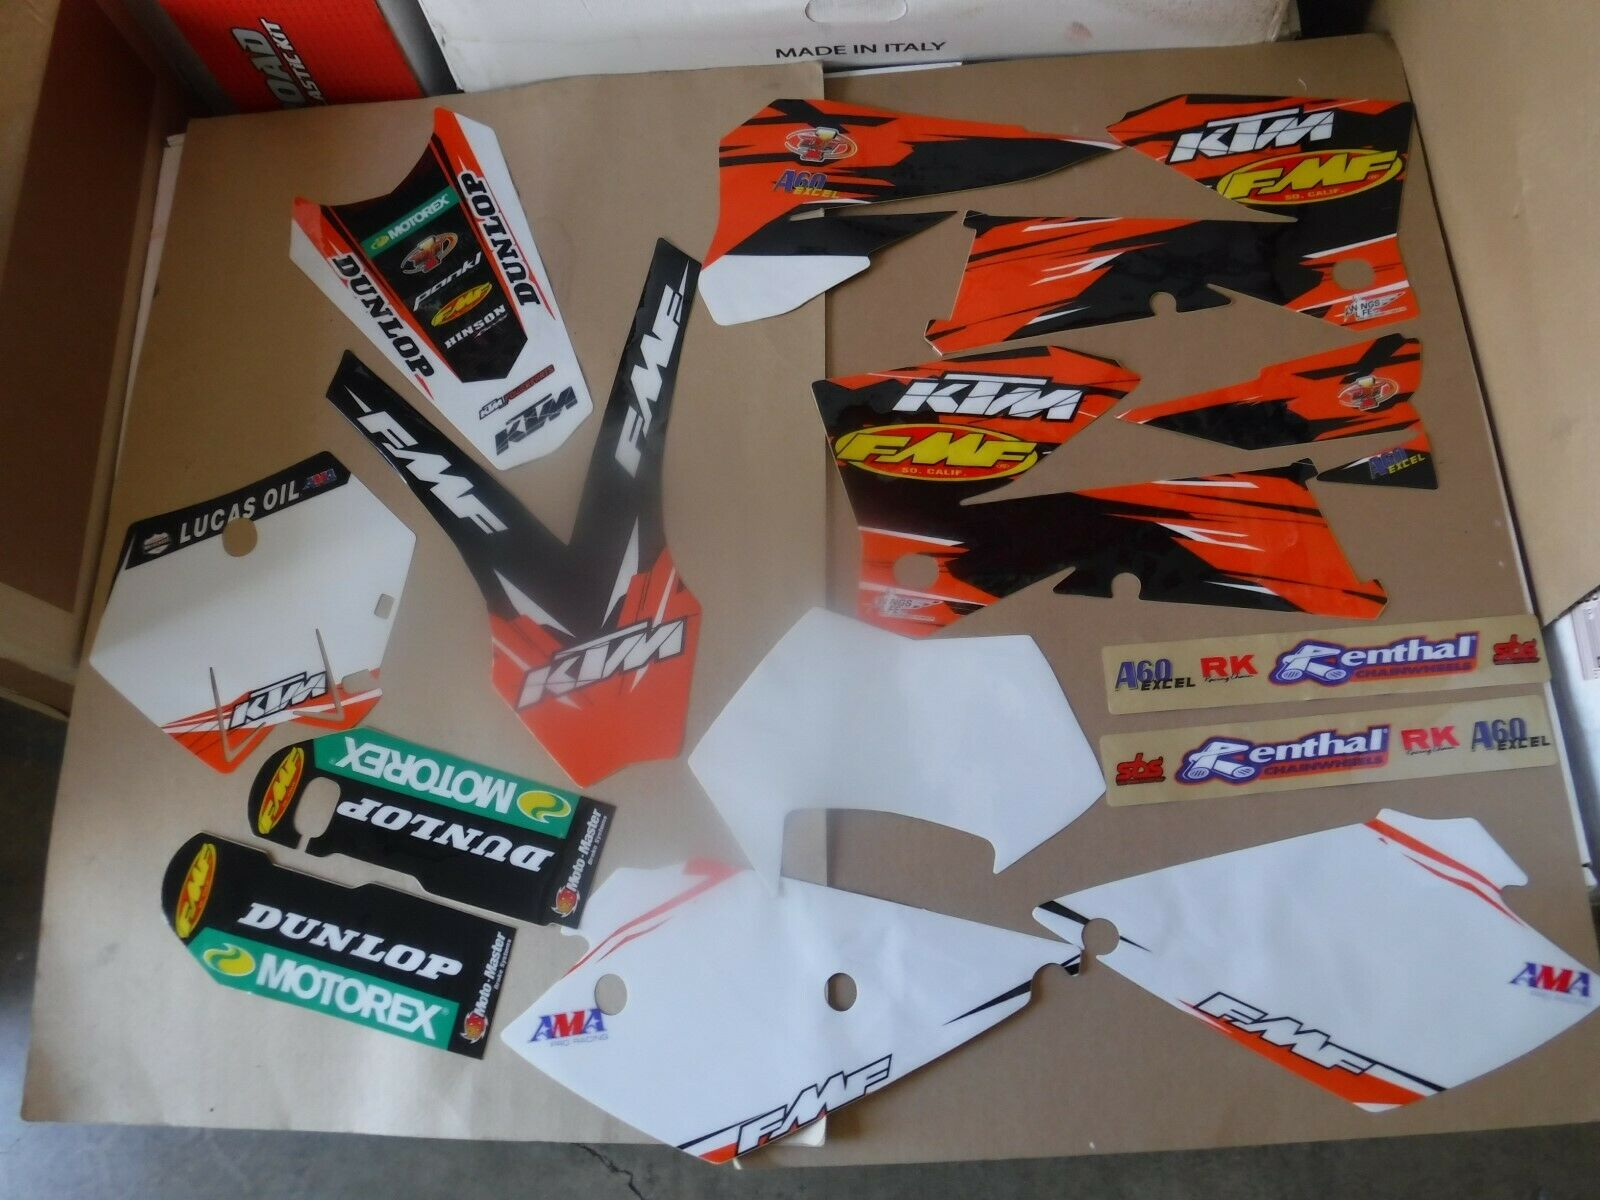 TEAM FMF KTM GRAPHICS & nmbr plates  2005 2006 SXF  SX & 2006 2007 EXC XCFW  XCW 2